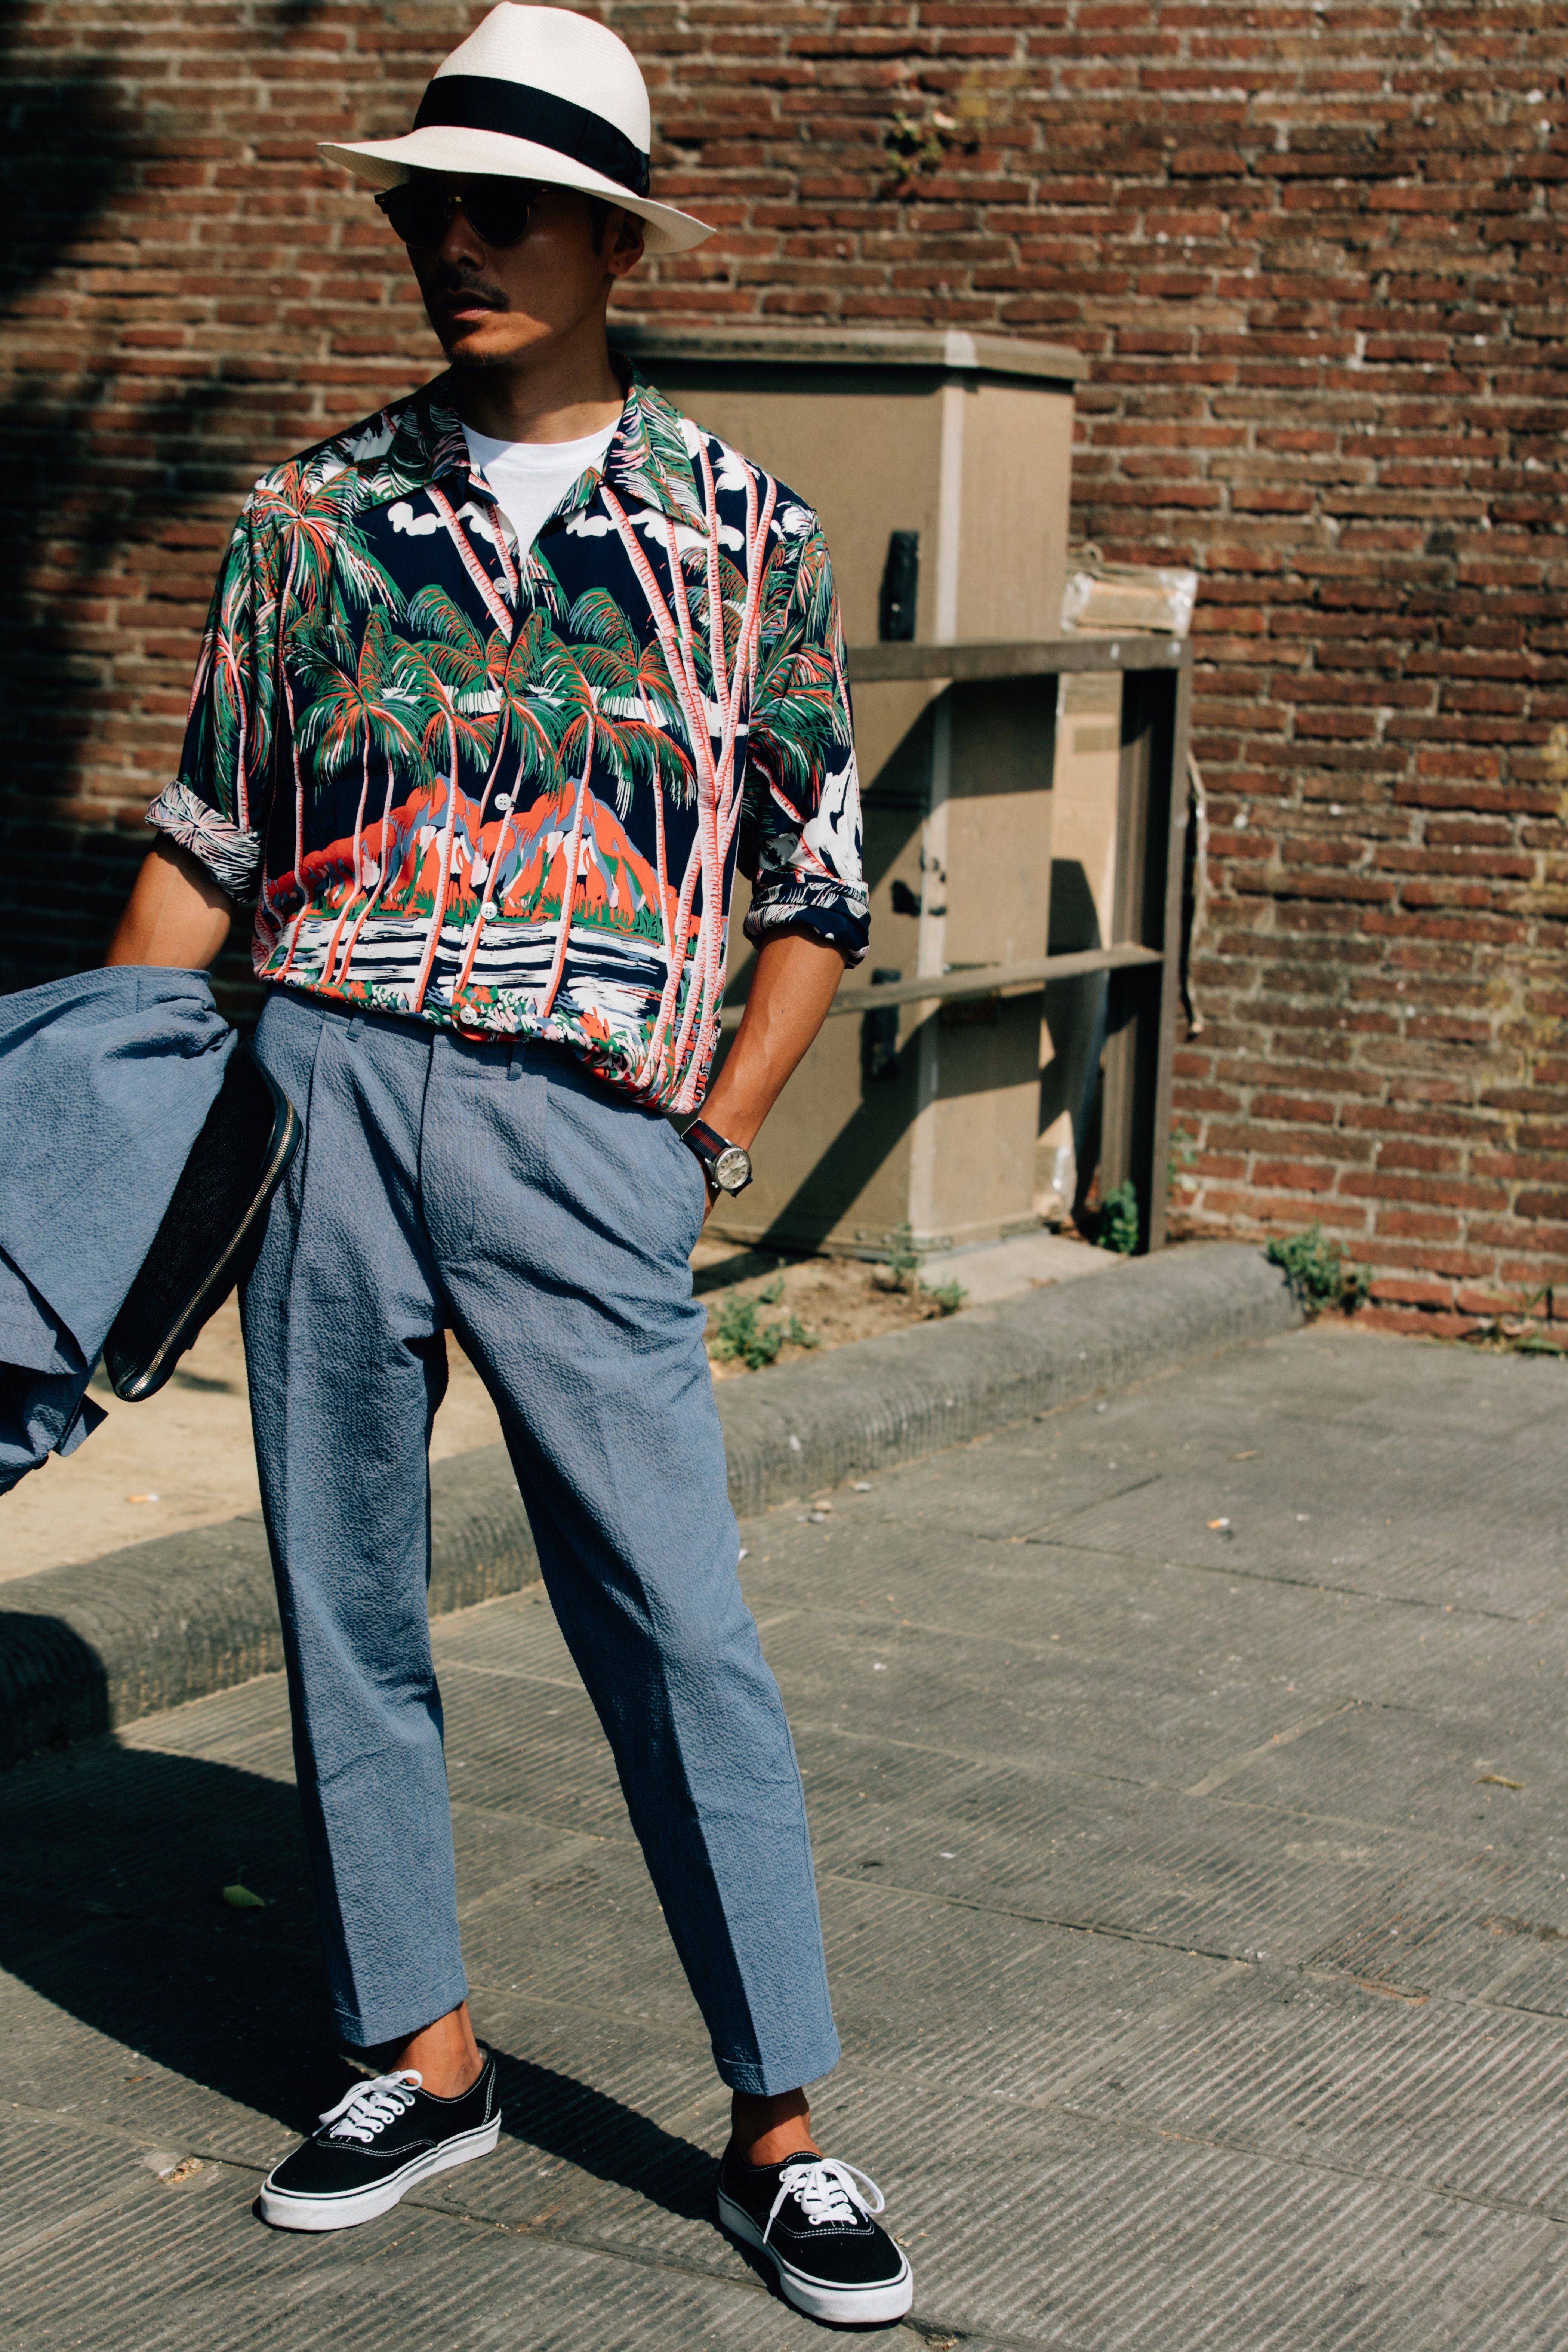 e70bcc17710fe5 The Best Street Style from Pitti Uomo 92 Photos